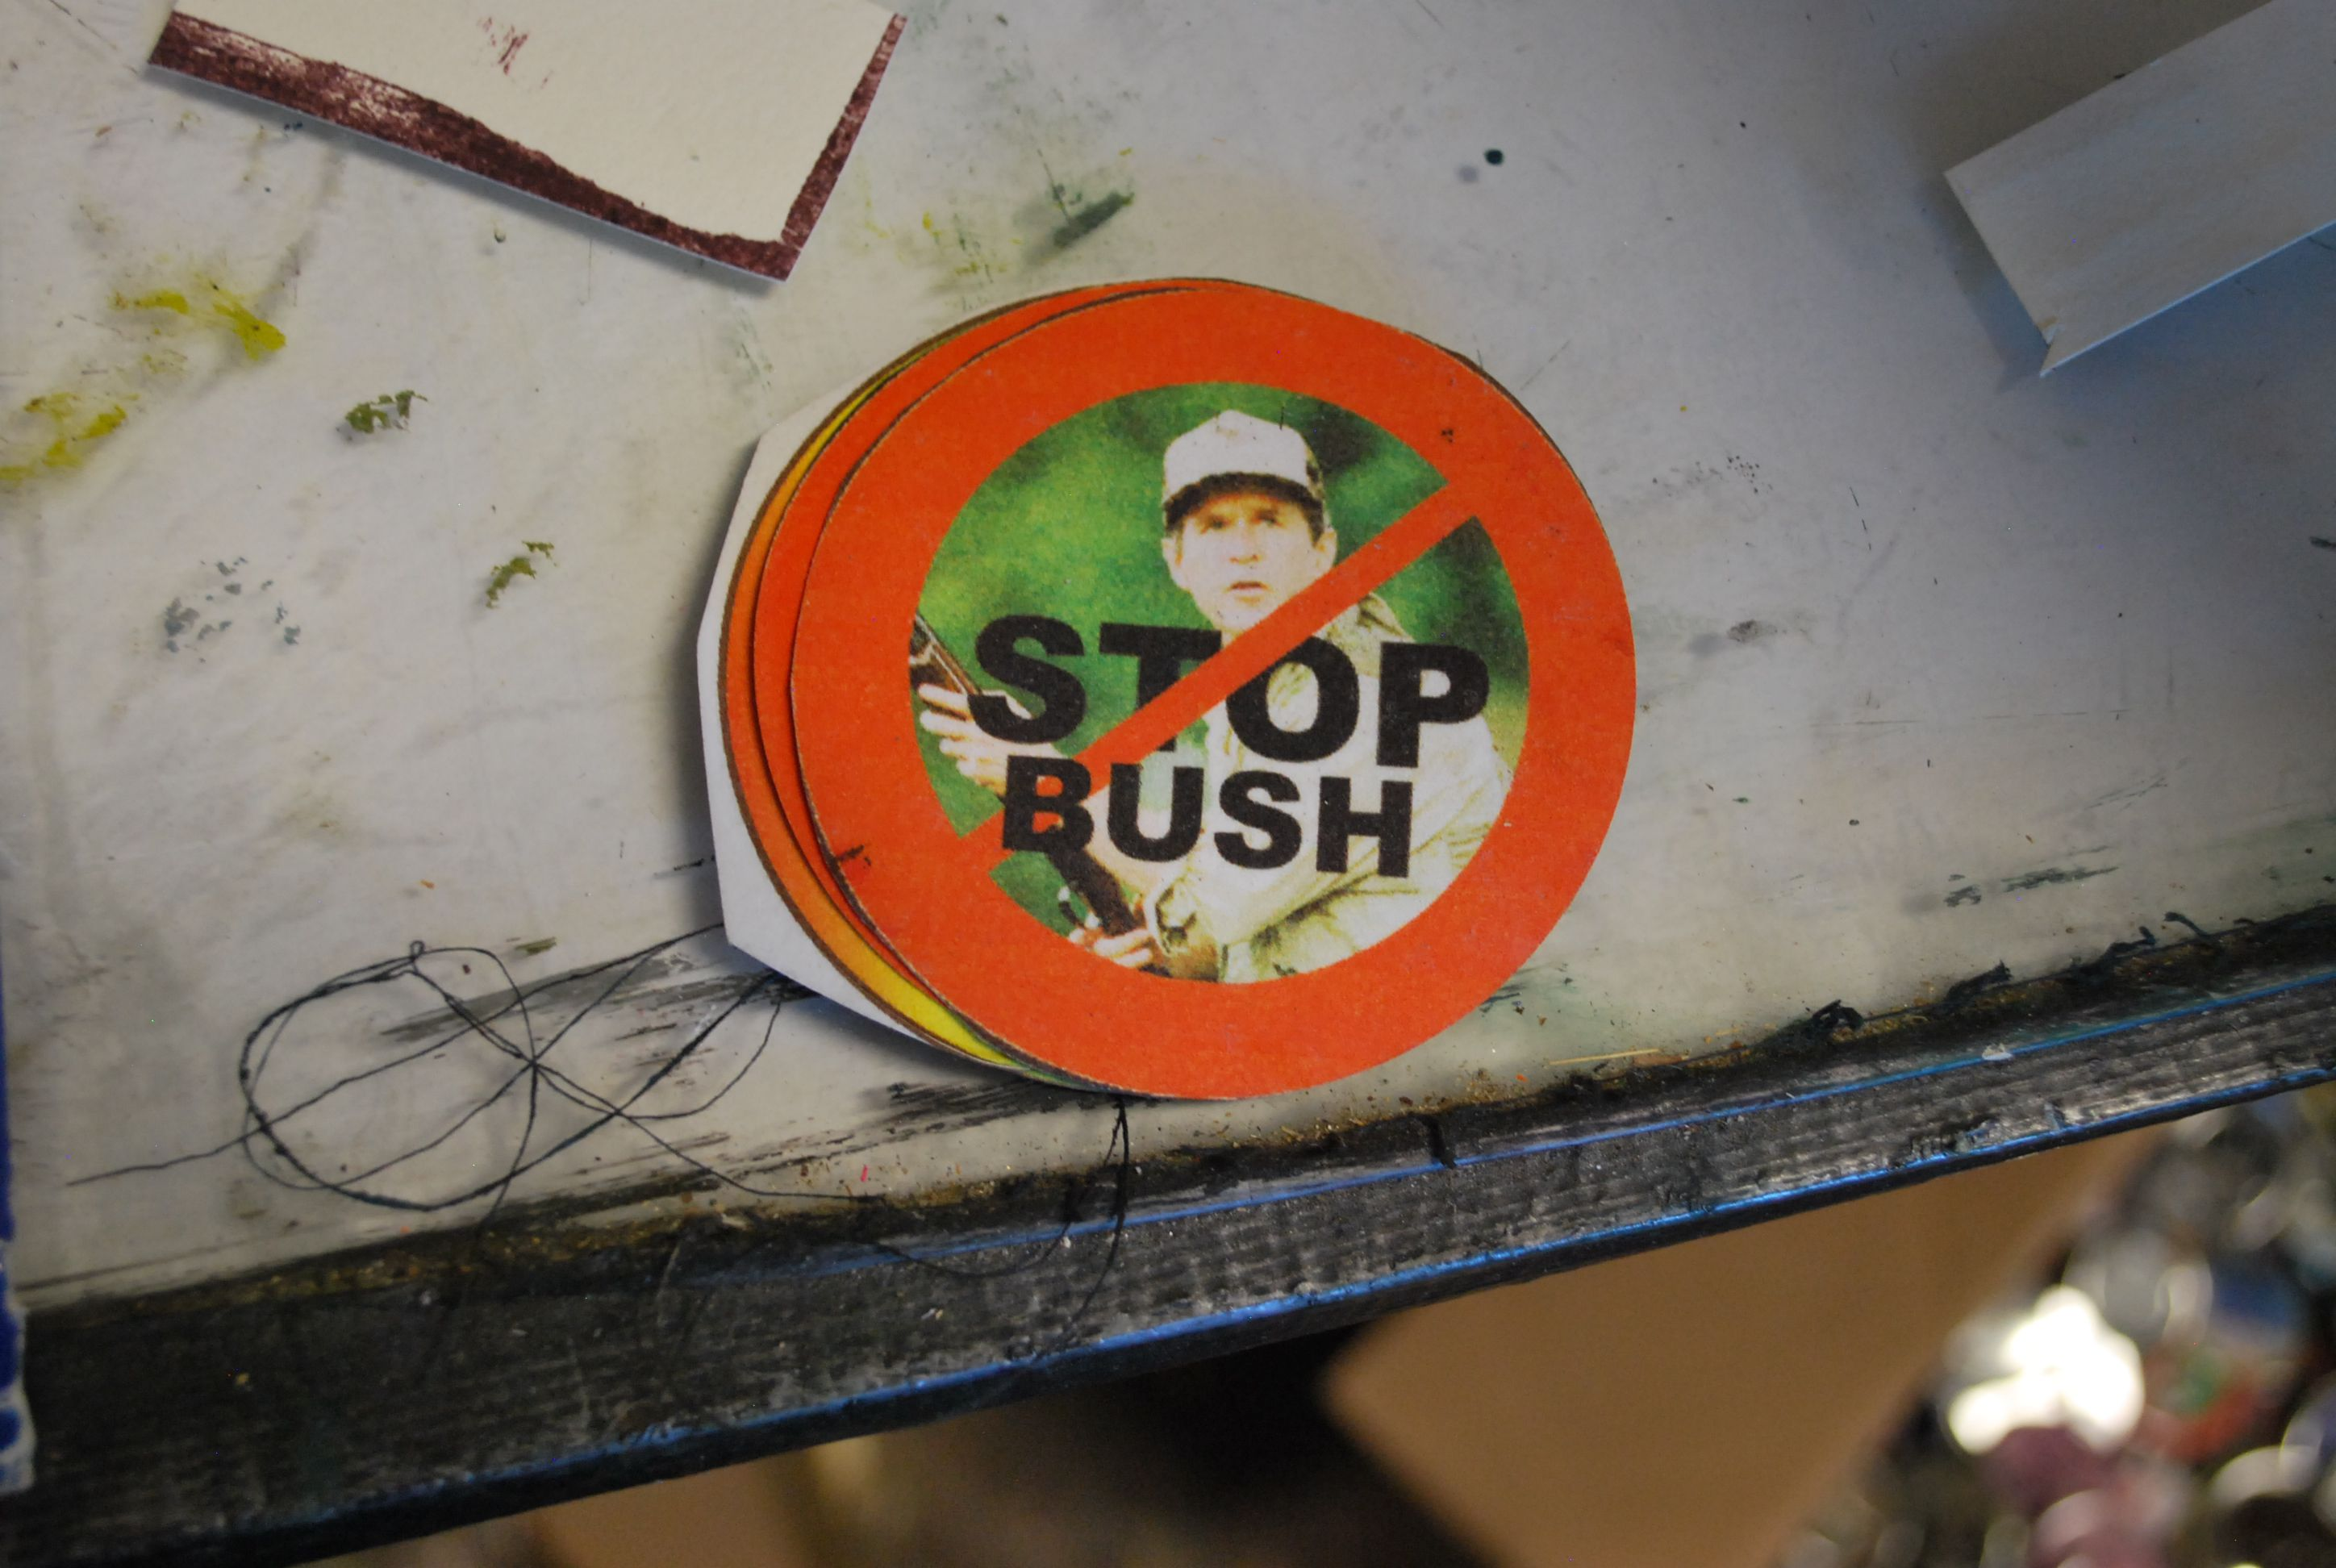 The Button Lady Wearing Dissent On Your Sleeve Utter Buzz My Icon Rakutencouk Shopping Short Circuit Nova Labs Kids Tshirt Is Perhaps Her Most Straightforward A Picture Of George W Bush In His Hunting Gear And Stamped Over Him Bright Orange No Symbol